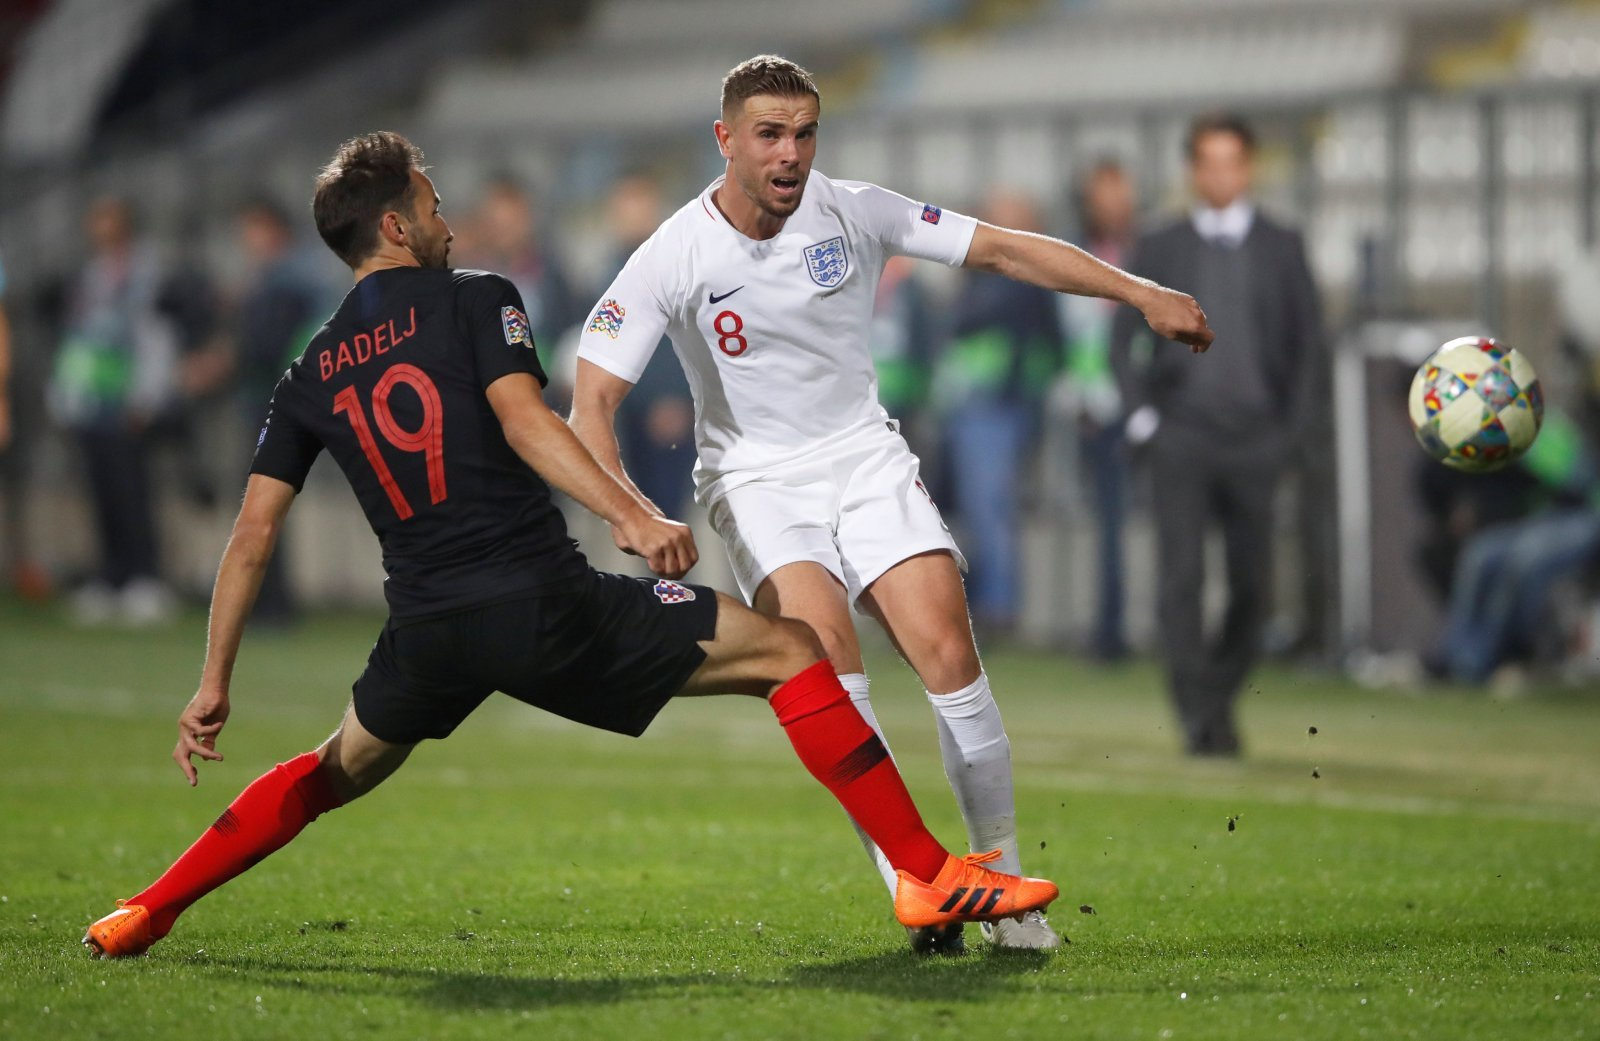 Liverpool fans take to Twitter to laud Henderson after 50th England cap